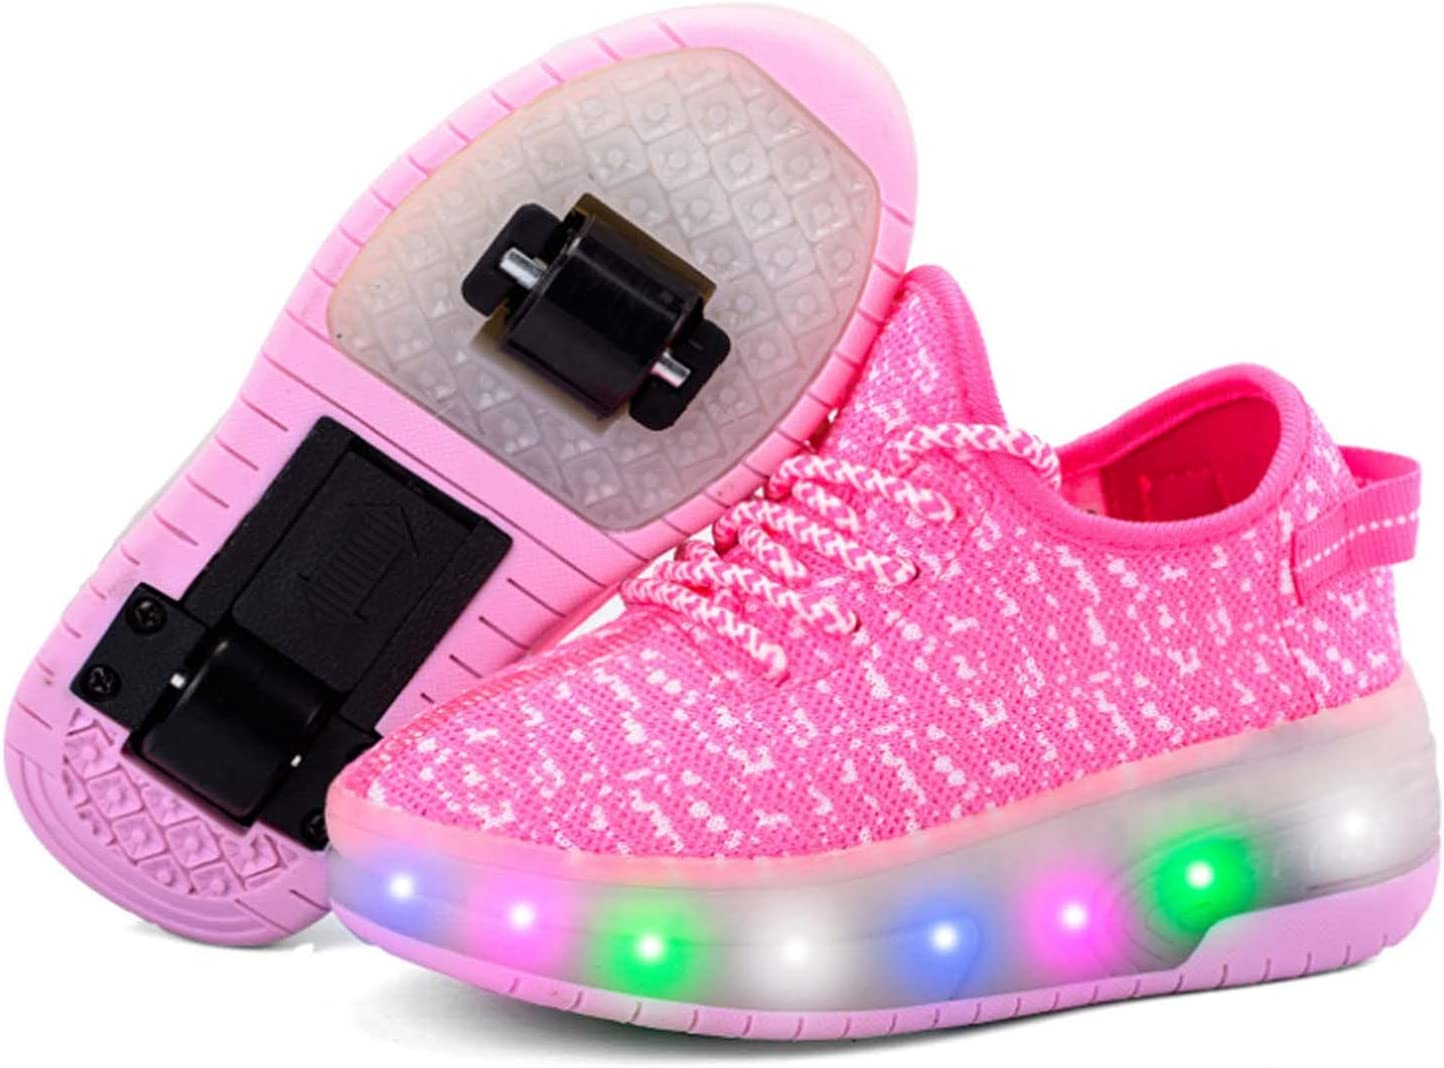 Unisex 7 Colors Changing LED Roller Skate Shoes with 2 Wheels Inline Automatic Retractable Technical Skateboarding Shoe Sport Outdoor Cross Trainer Vibration Flashing Gymnastic Sneakers